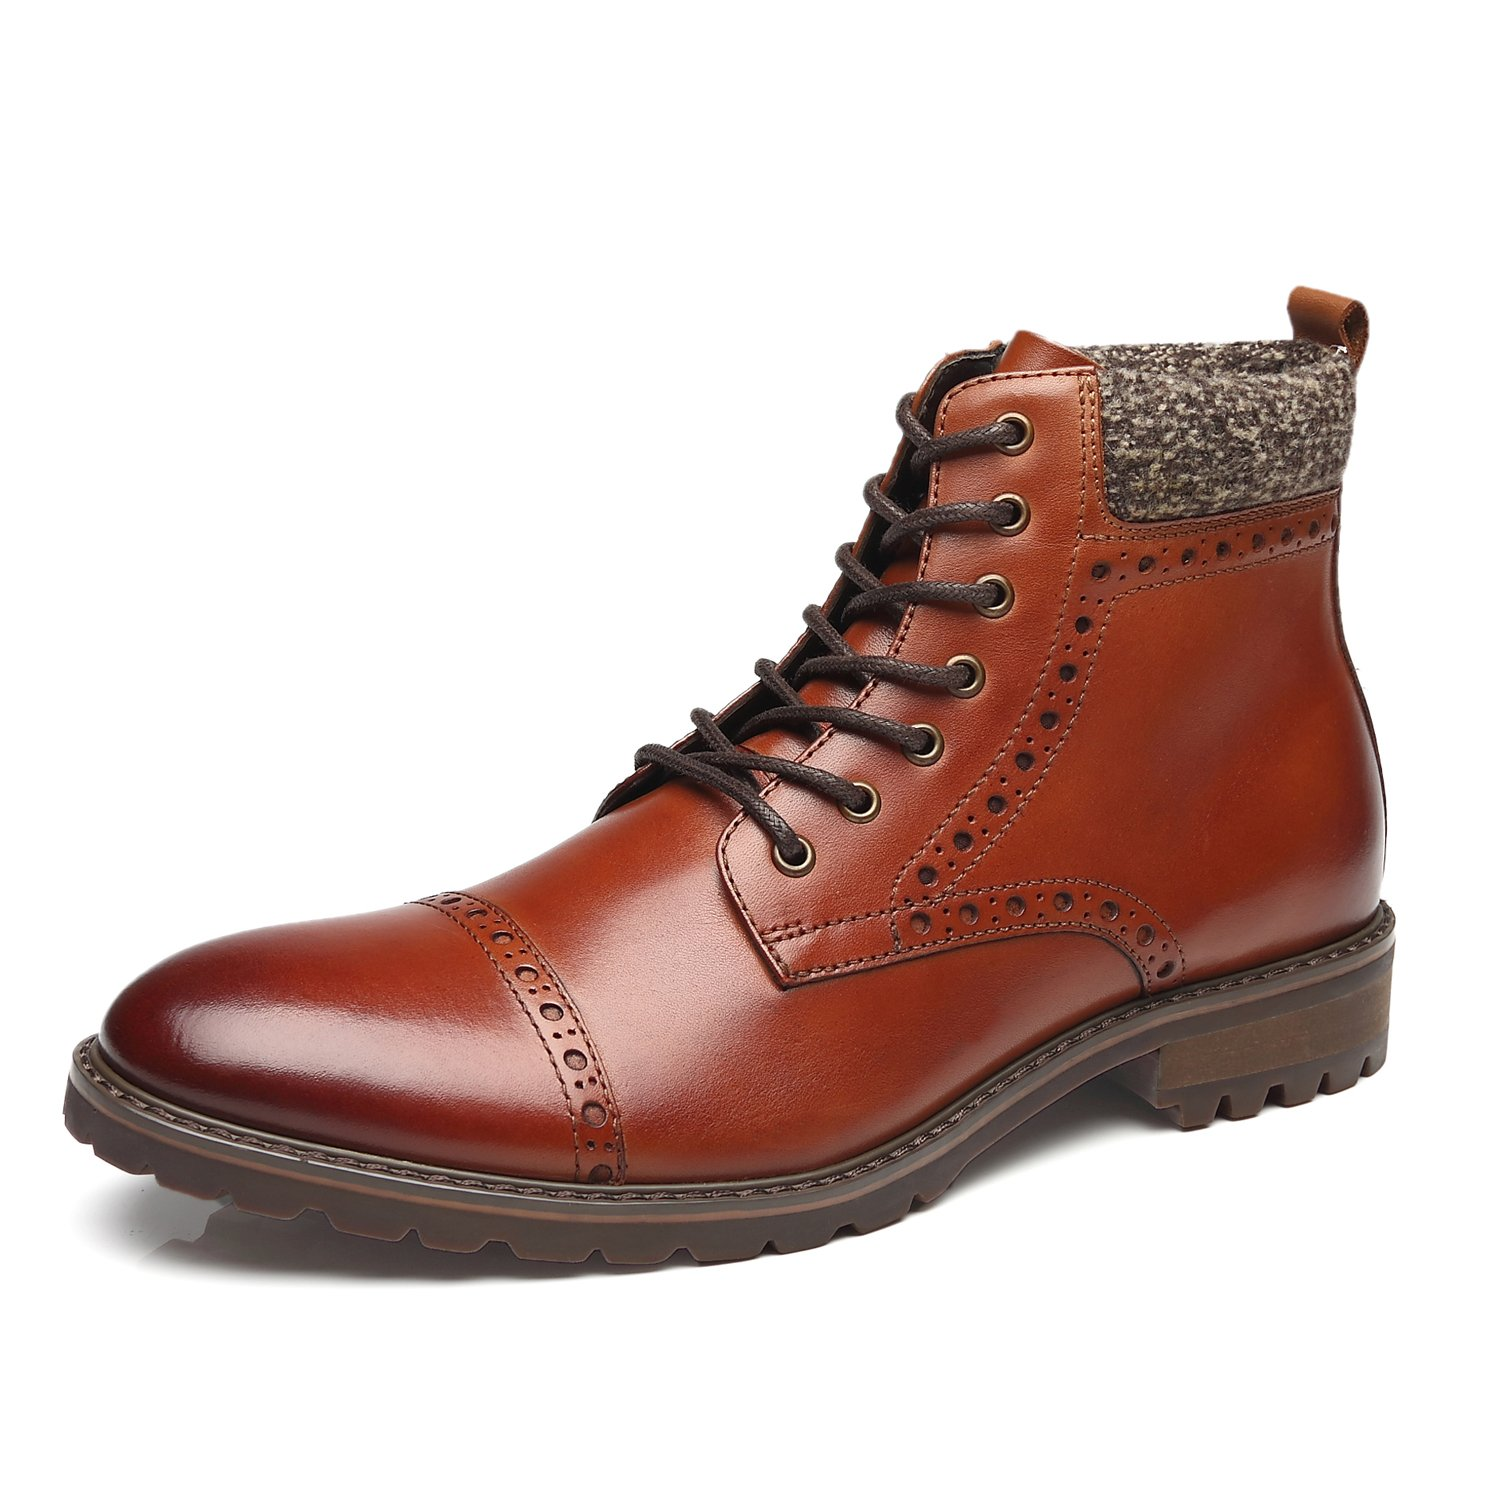 fd6d8283482 La Milano Mens Dress Boots Cap Toe Lace up Leather Winter Oxford Casual  Comfortable Ankle Combat Boots for Men